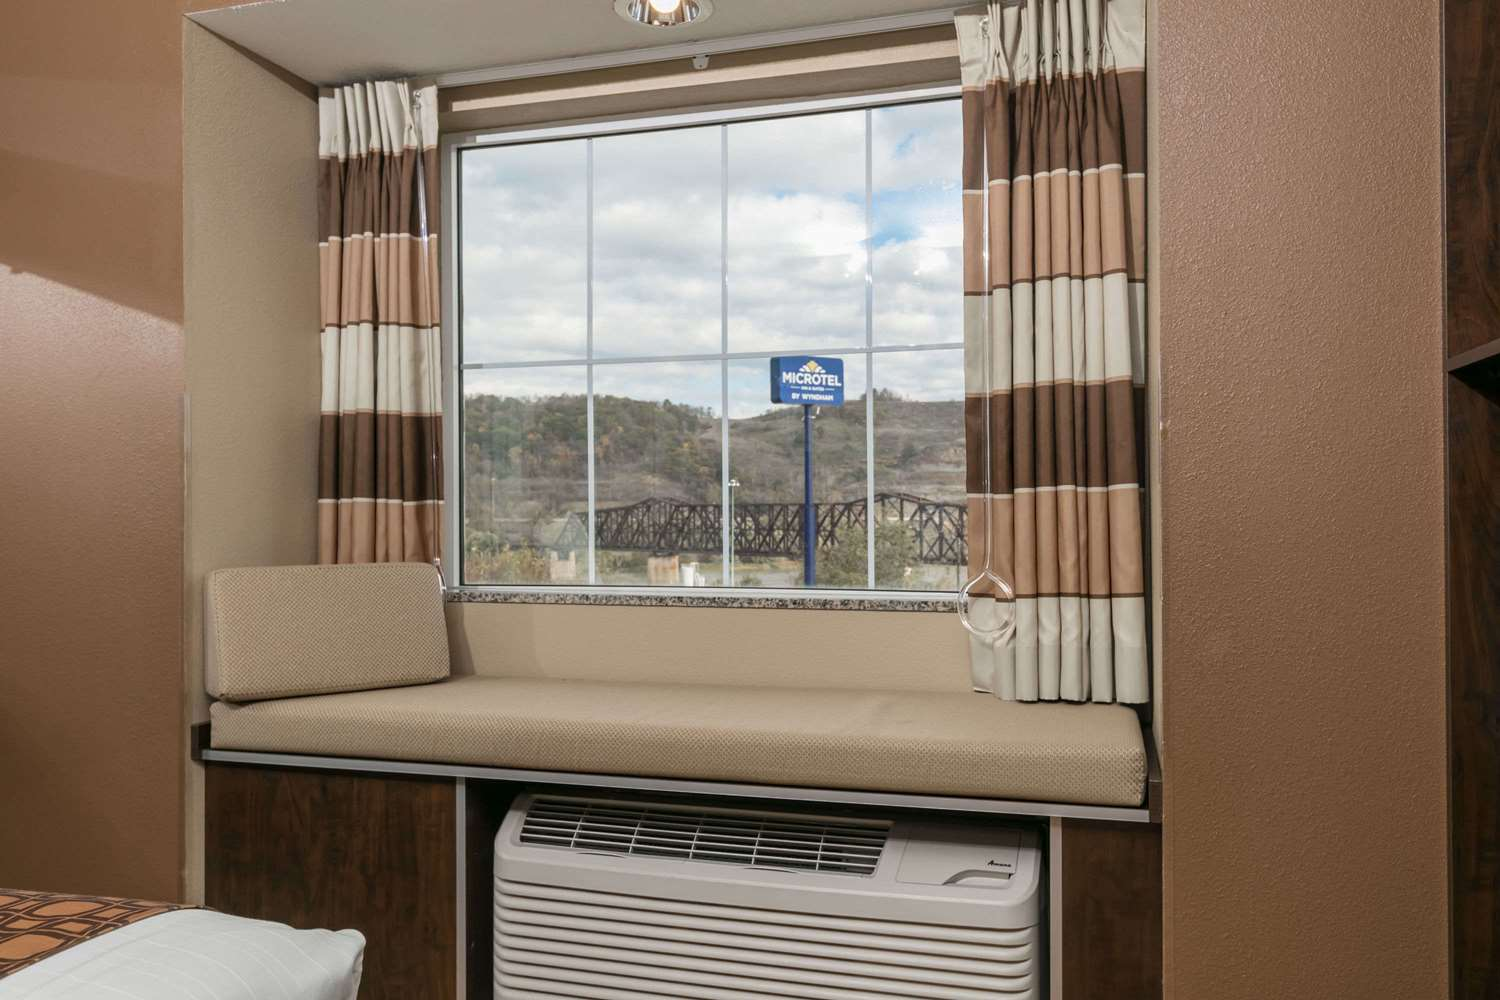 Amenities - Microtel Inn & Suites by Wyndham Steubenville